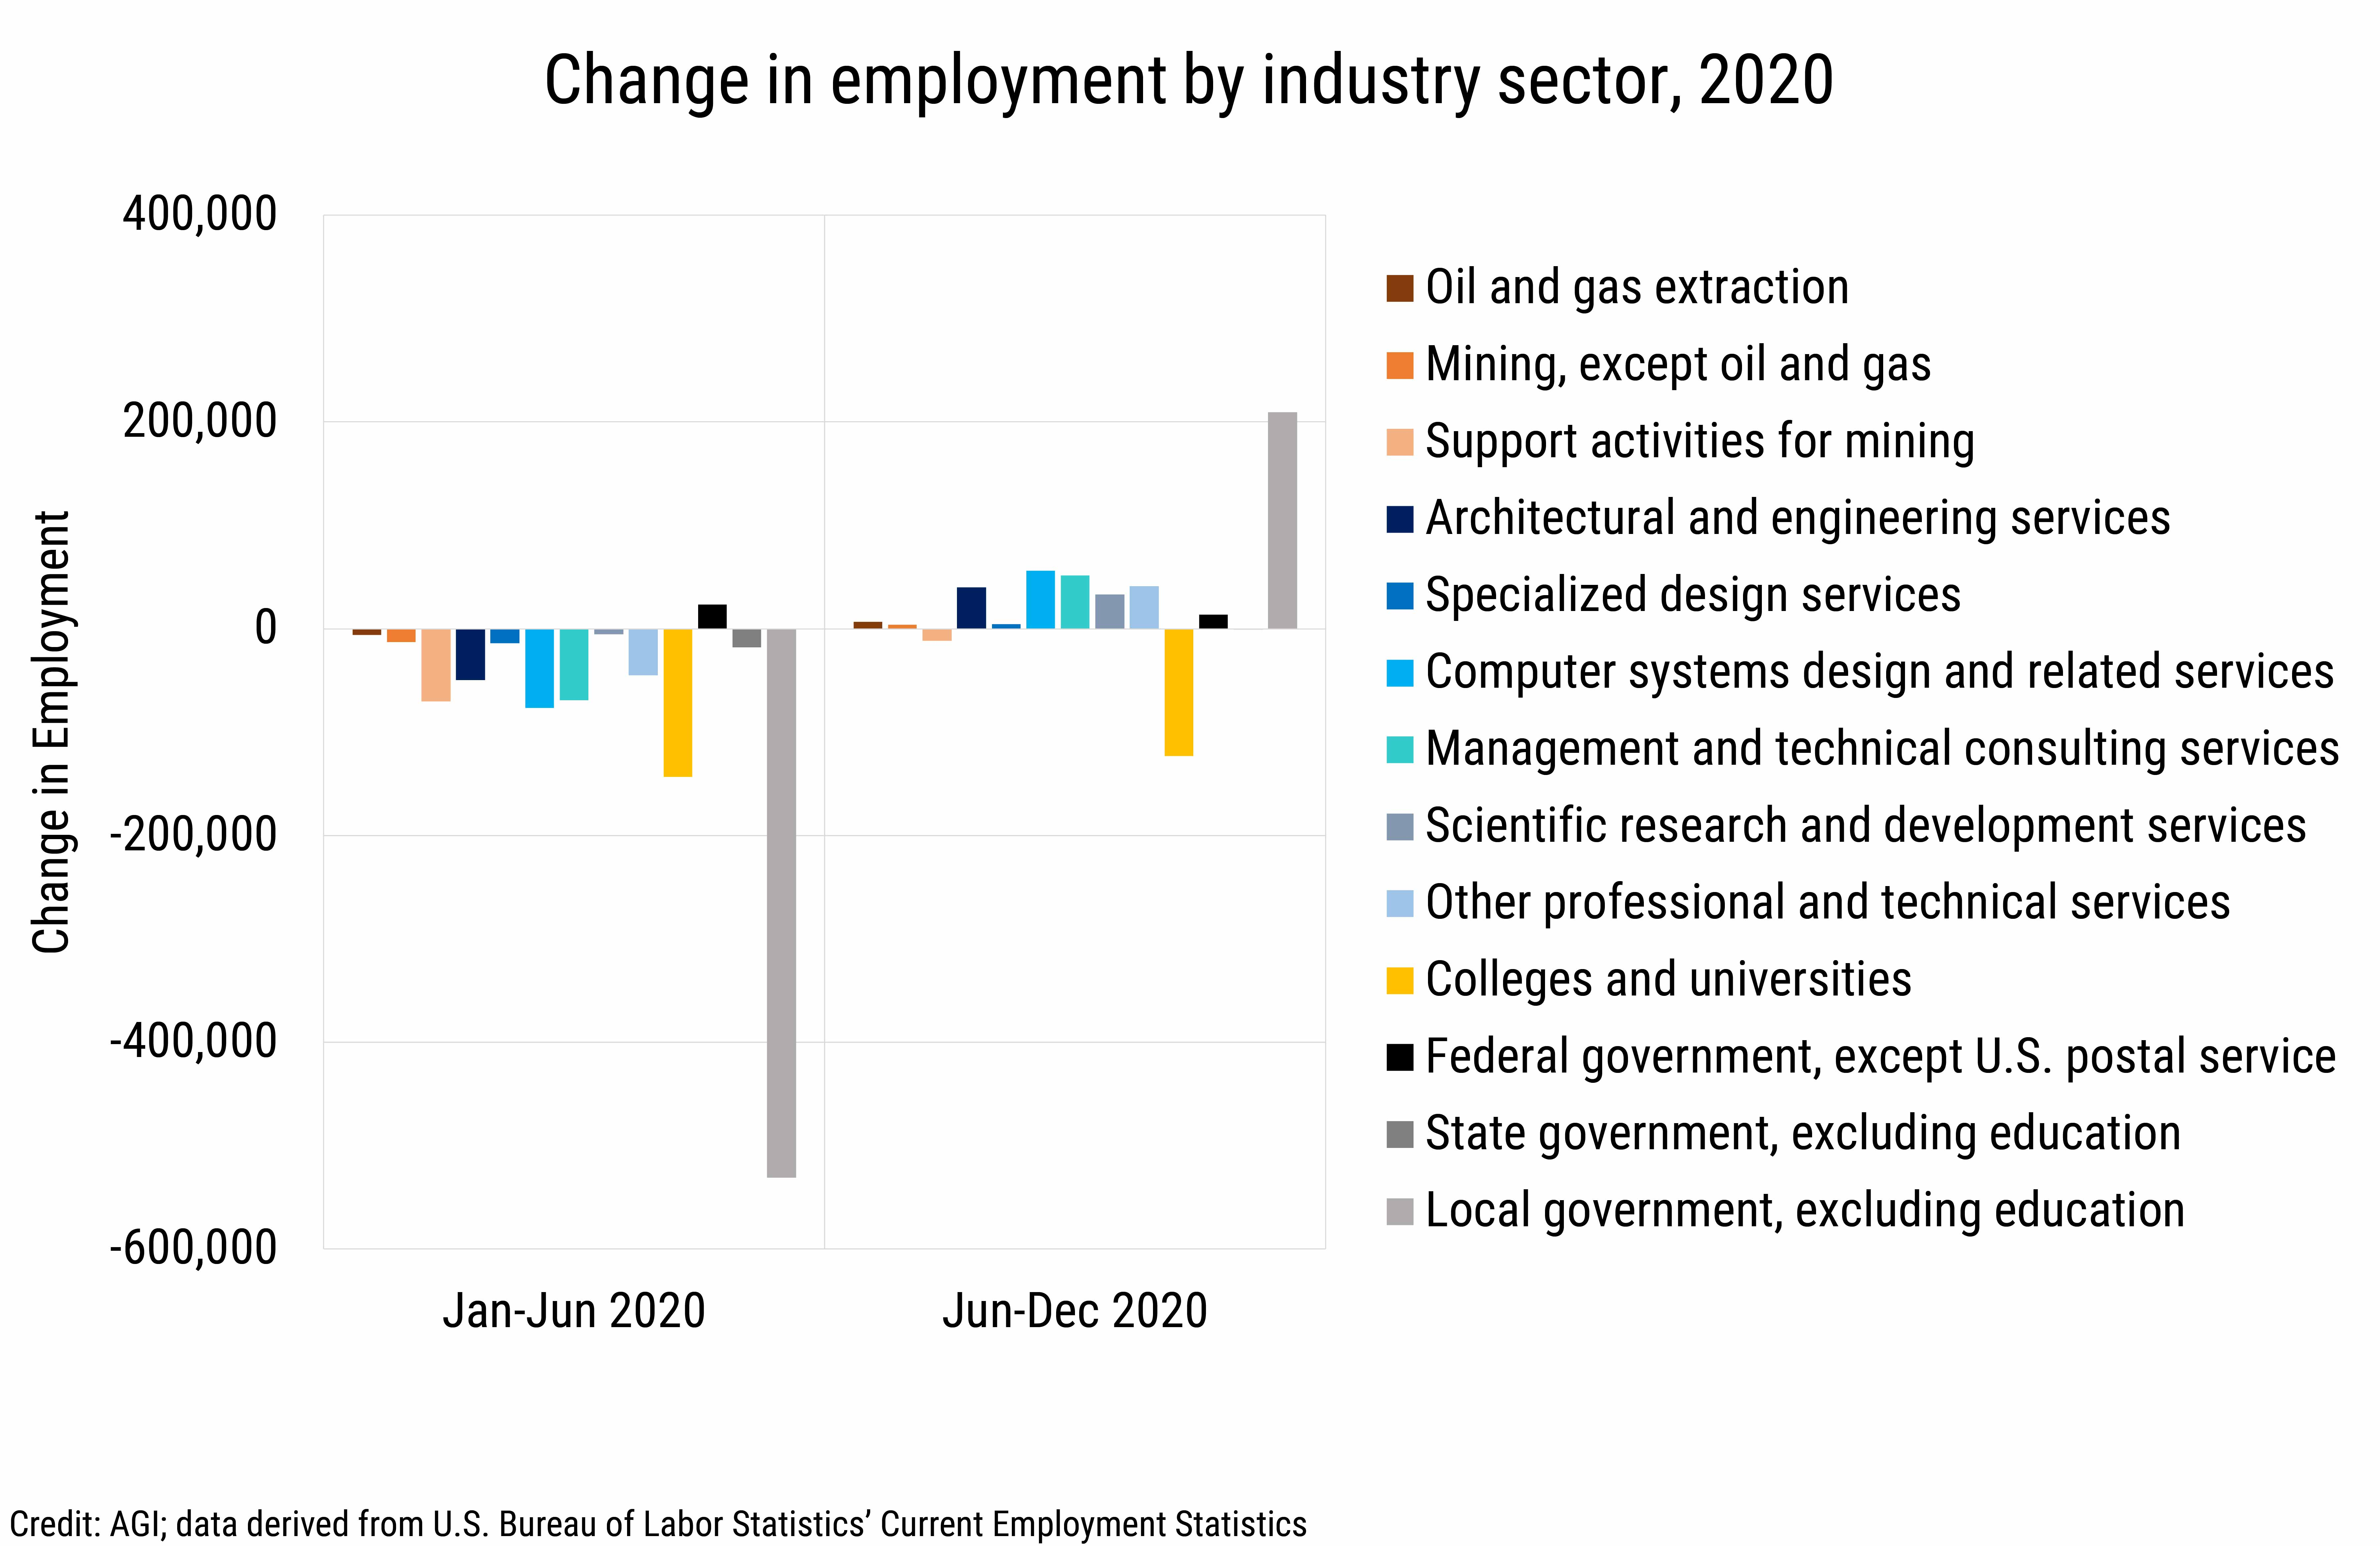 DB_2021-010 chart 05: Change in employment by industry sector, 2020 (Credit: AGI, data derived from the U.S. Bureau of Labor Statistics, Current Employment Statistics)